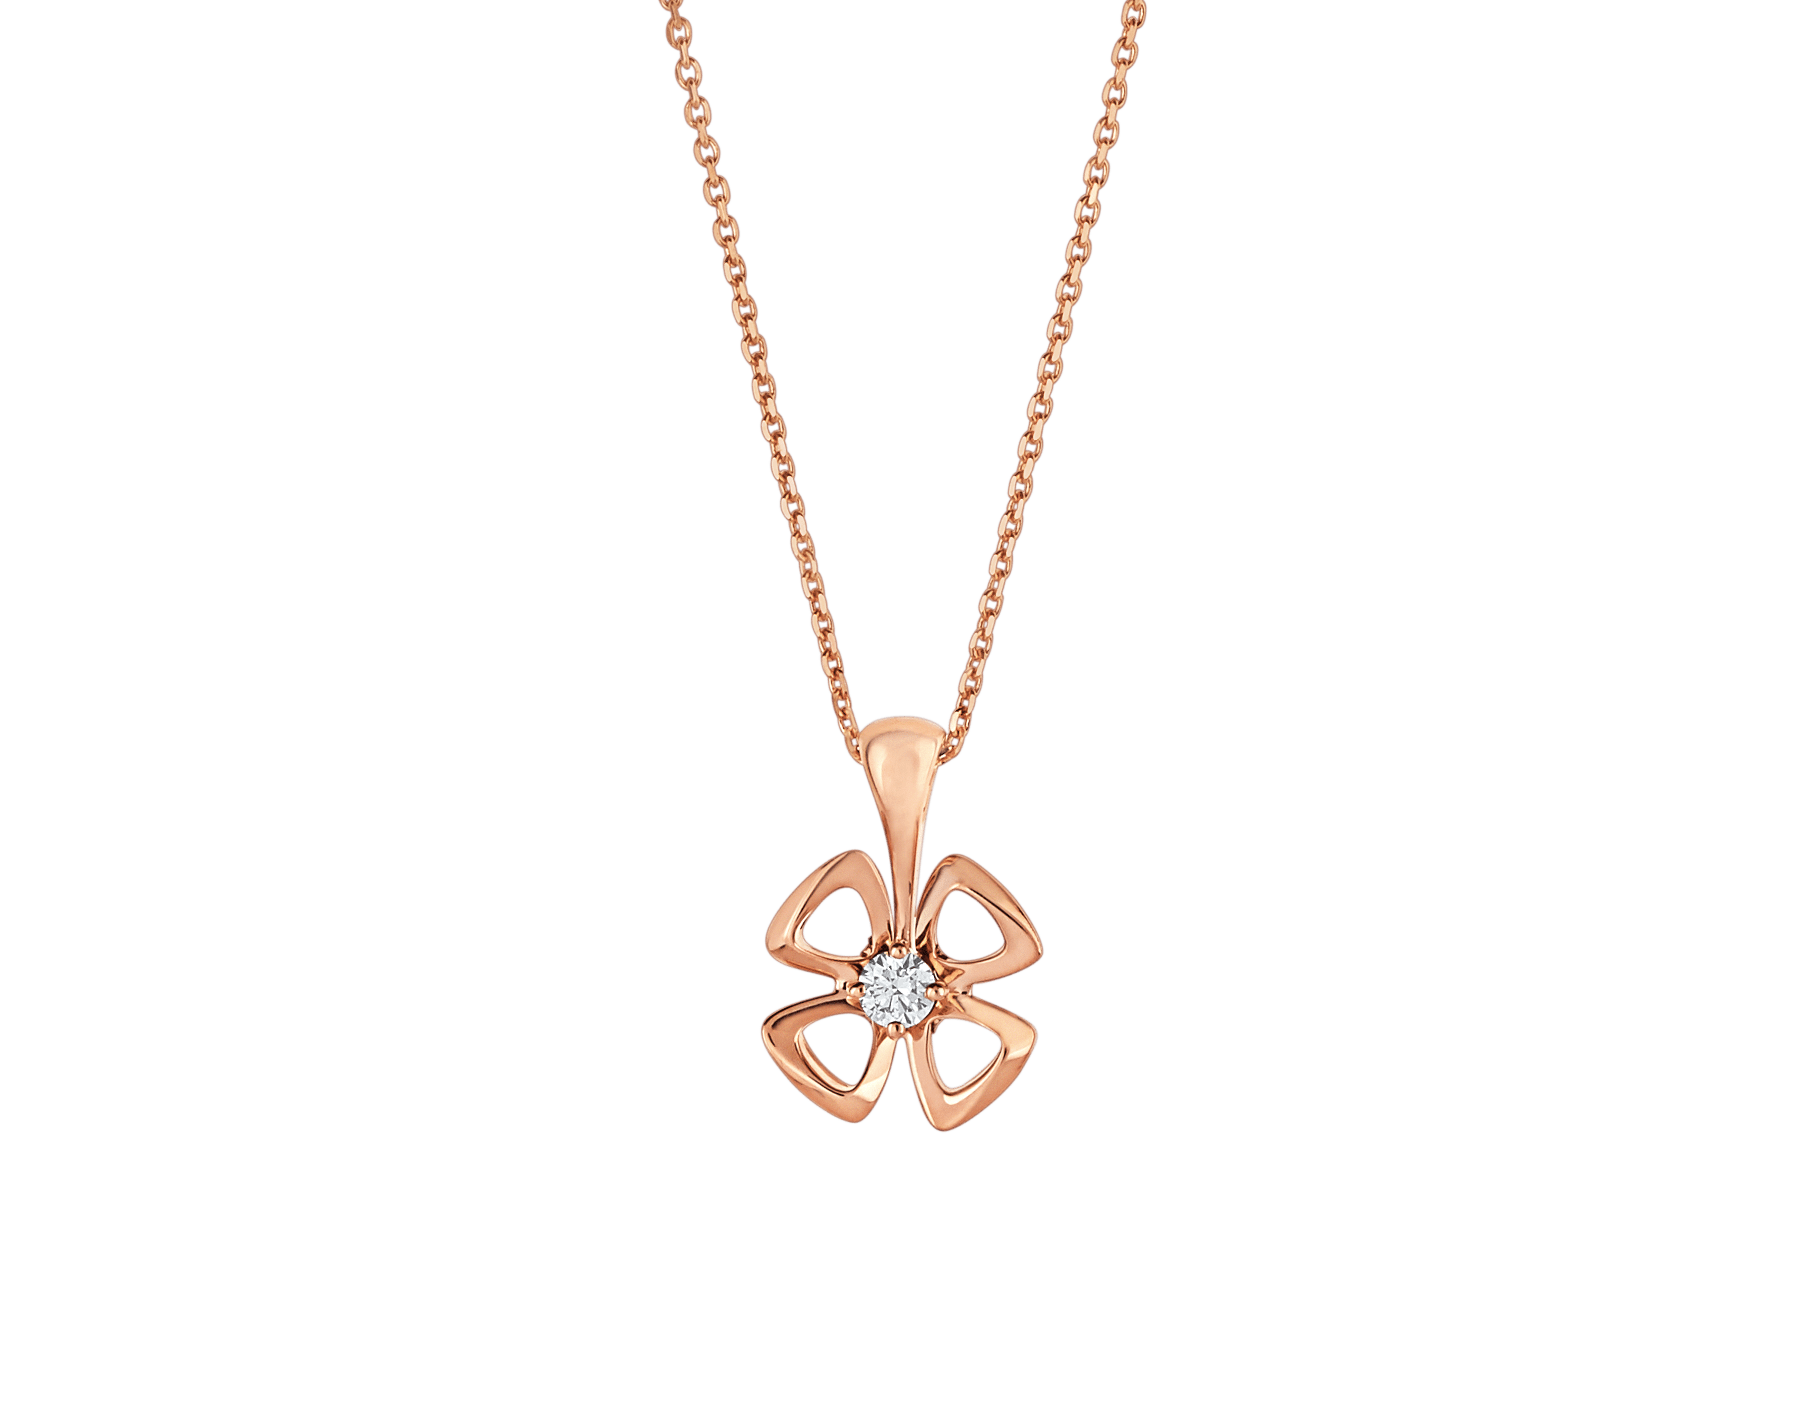 Fiorever 18 kt rose gold necklace set with a central diamond. 355324 image 1